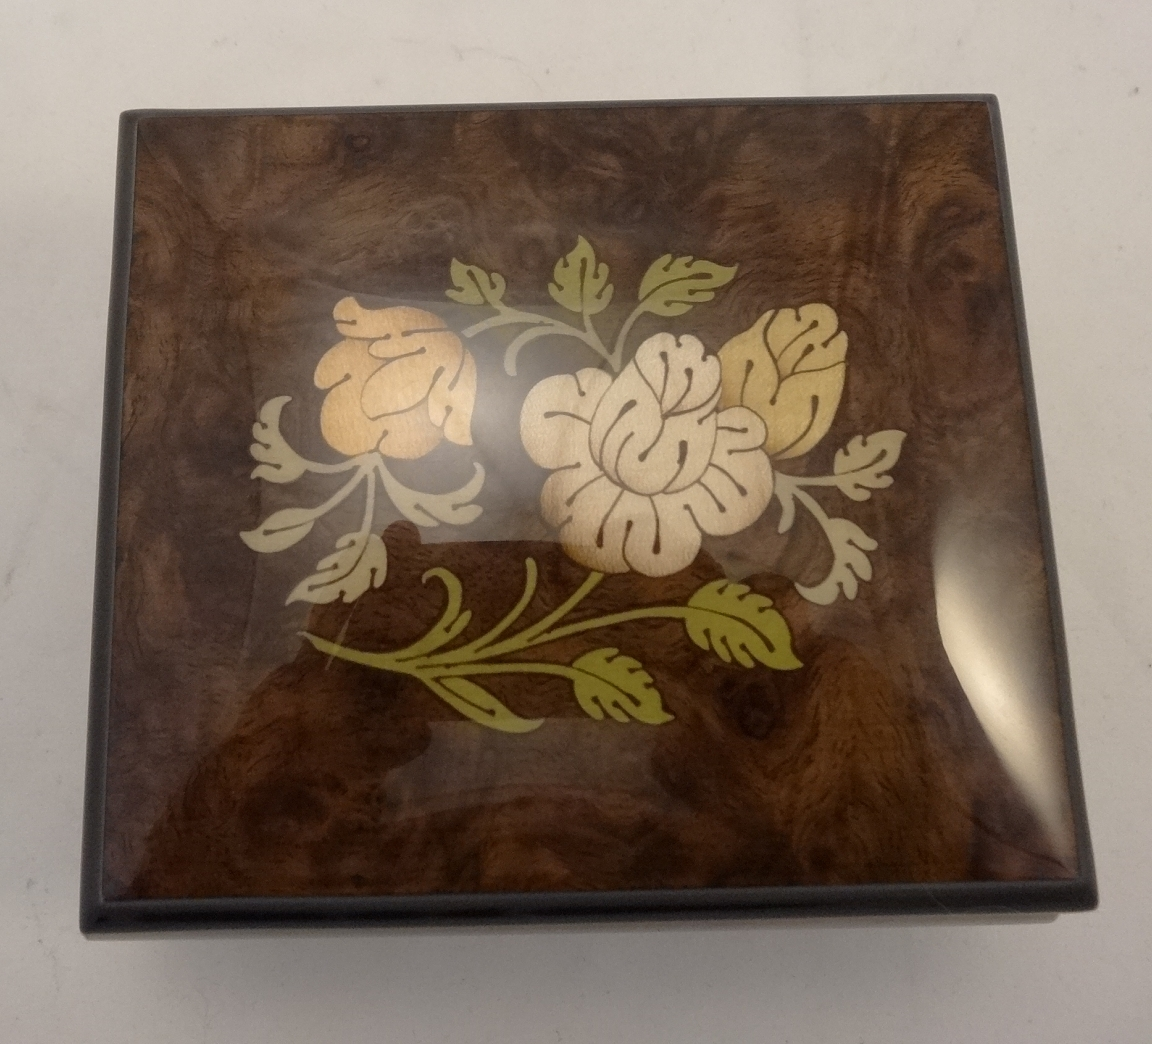 Burl walnut high gloss music box with flowers inlay